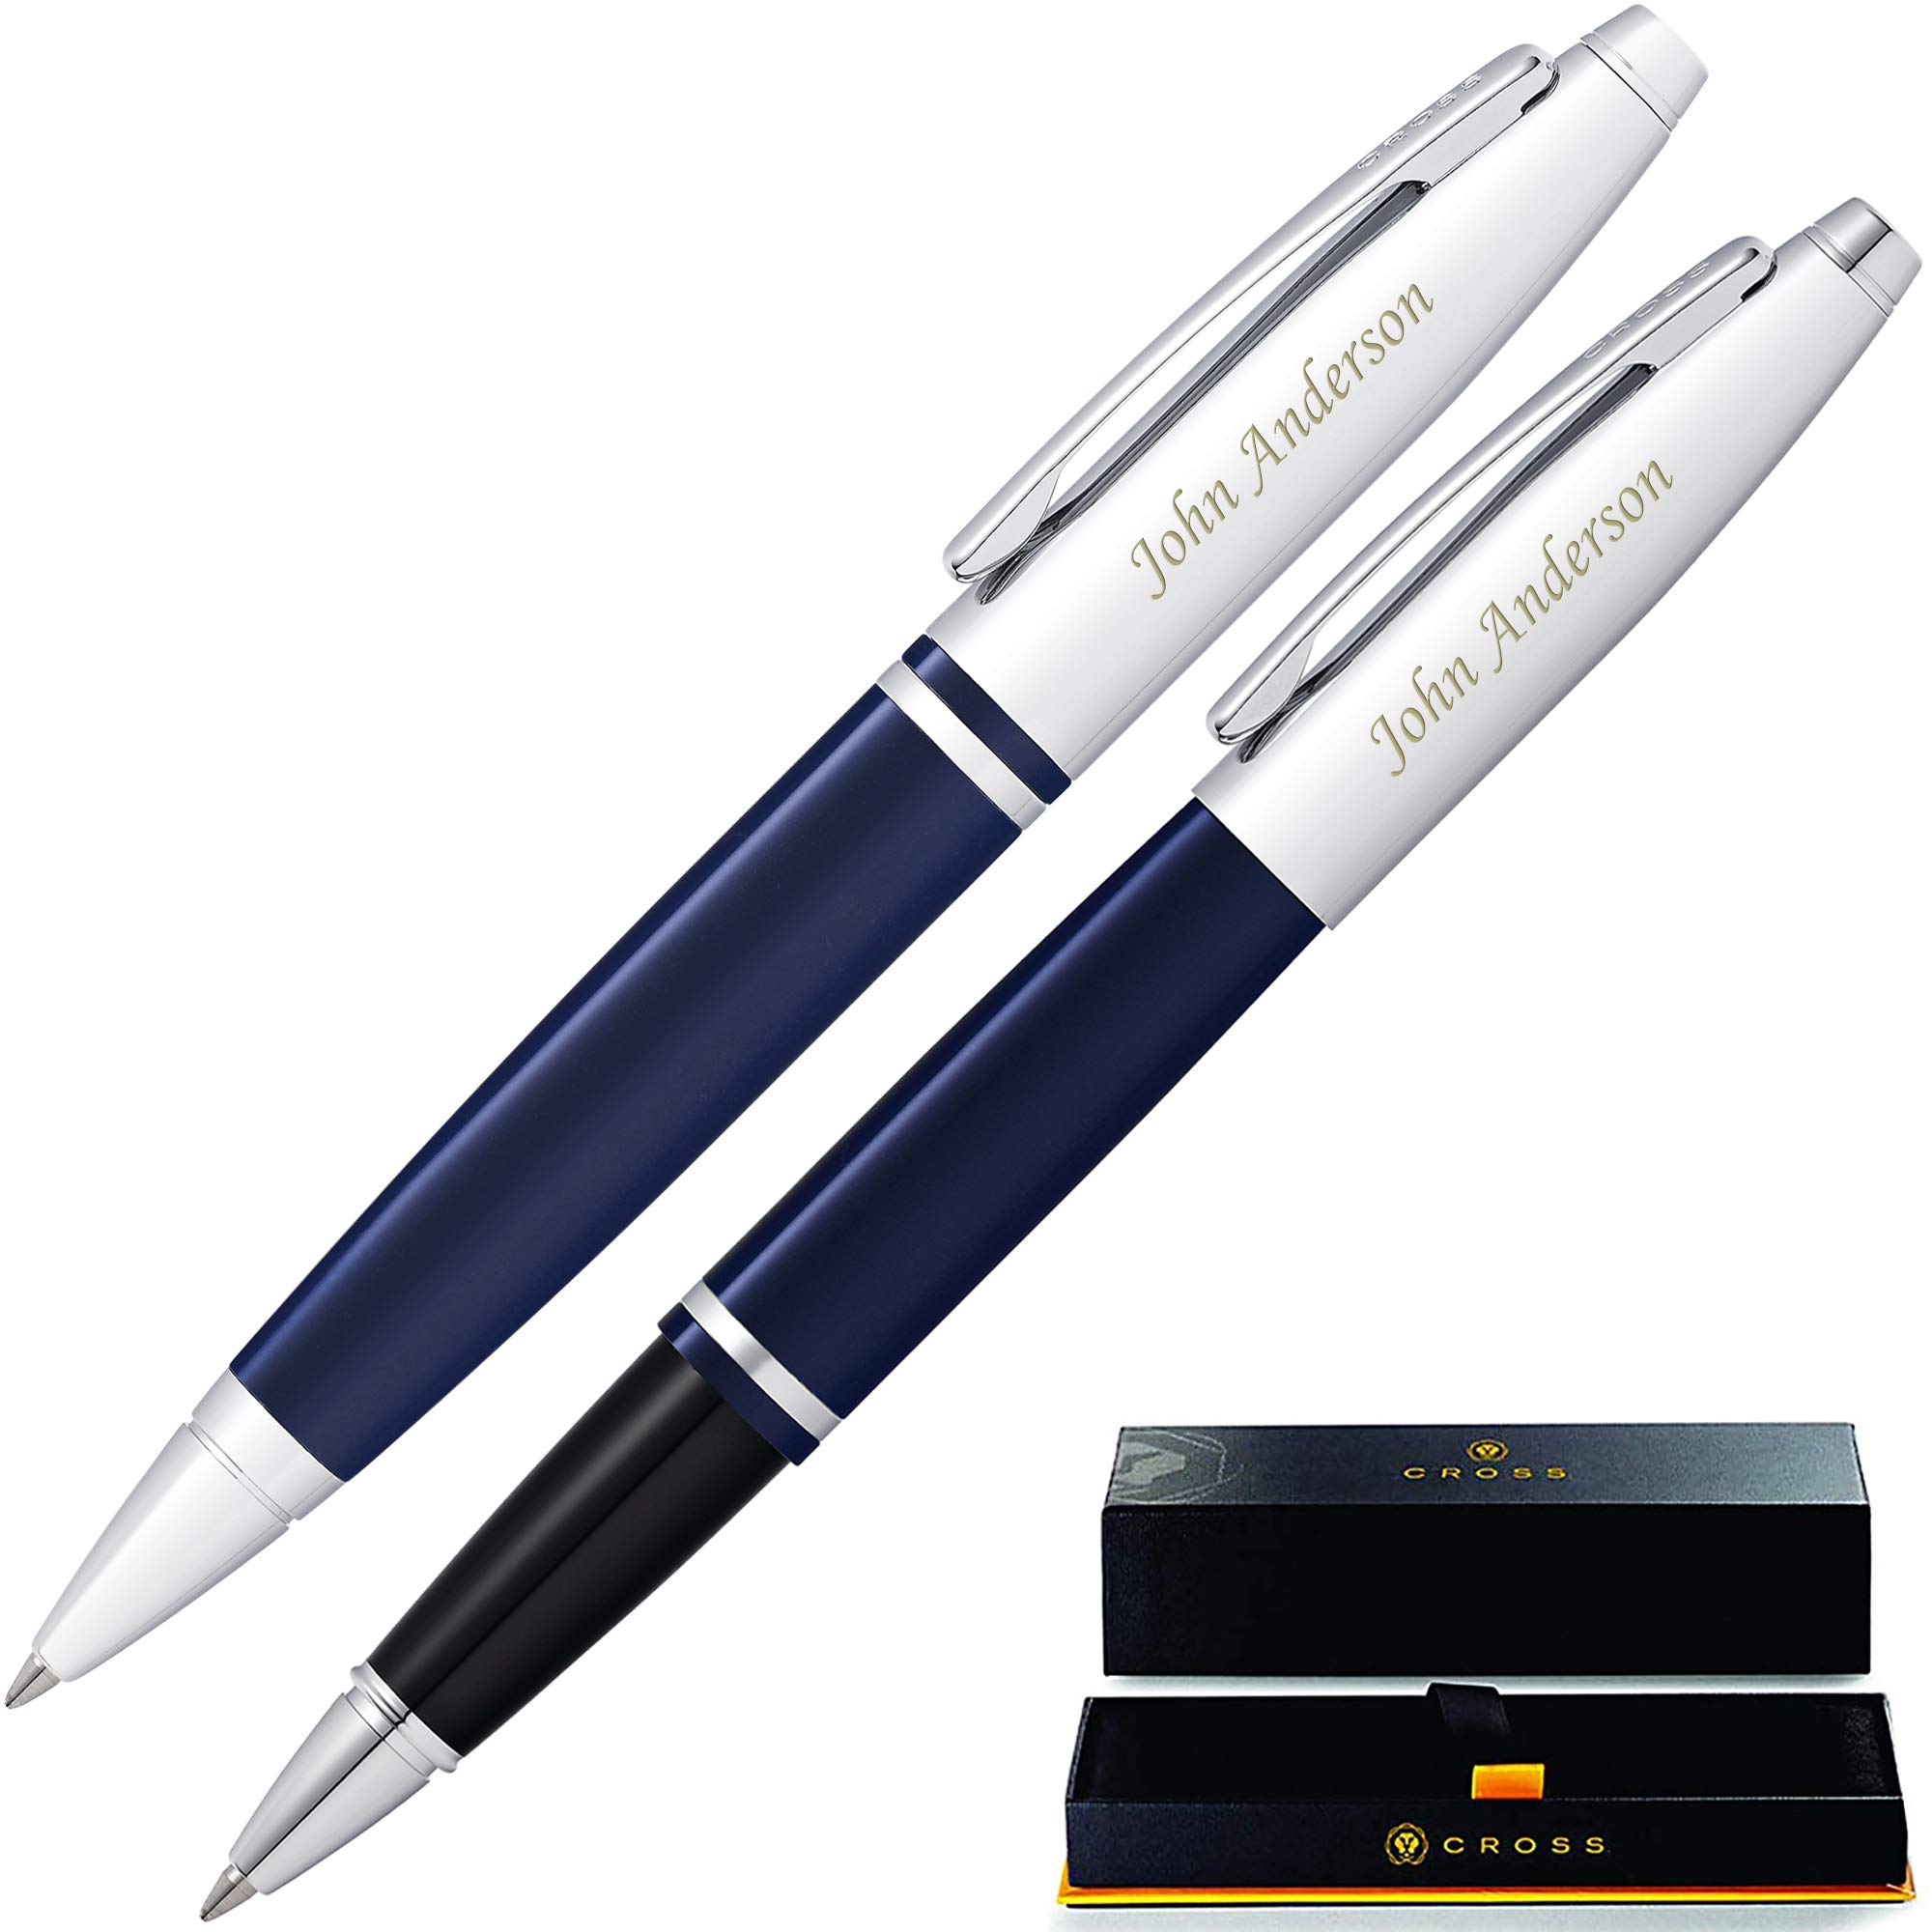 Cross Pen Set | Engraved/Personalized Cross Calais Ballpoint and Rollerball Double Pen Gift Set with Case - Blue. Engraved gift for man or women, with your custom name or message